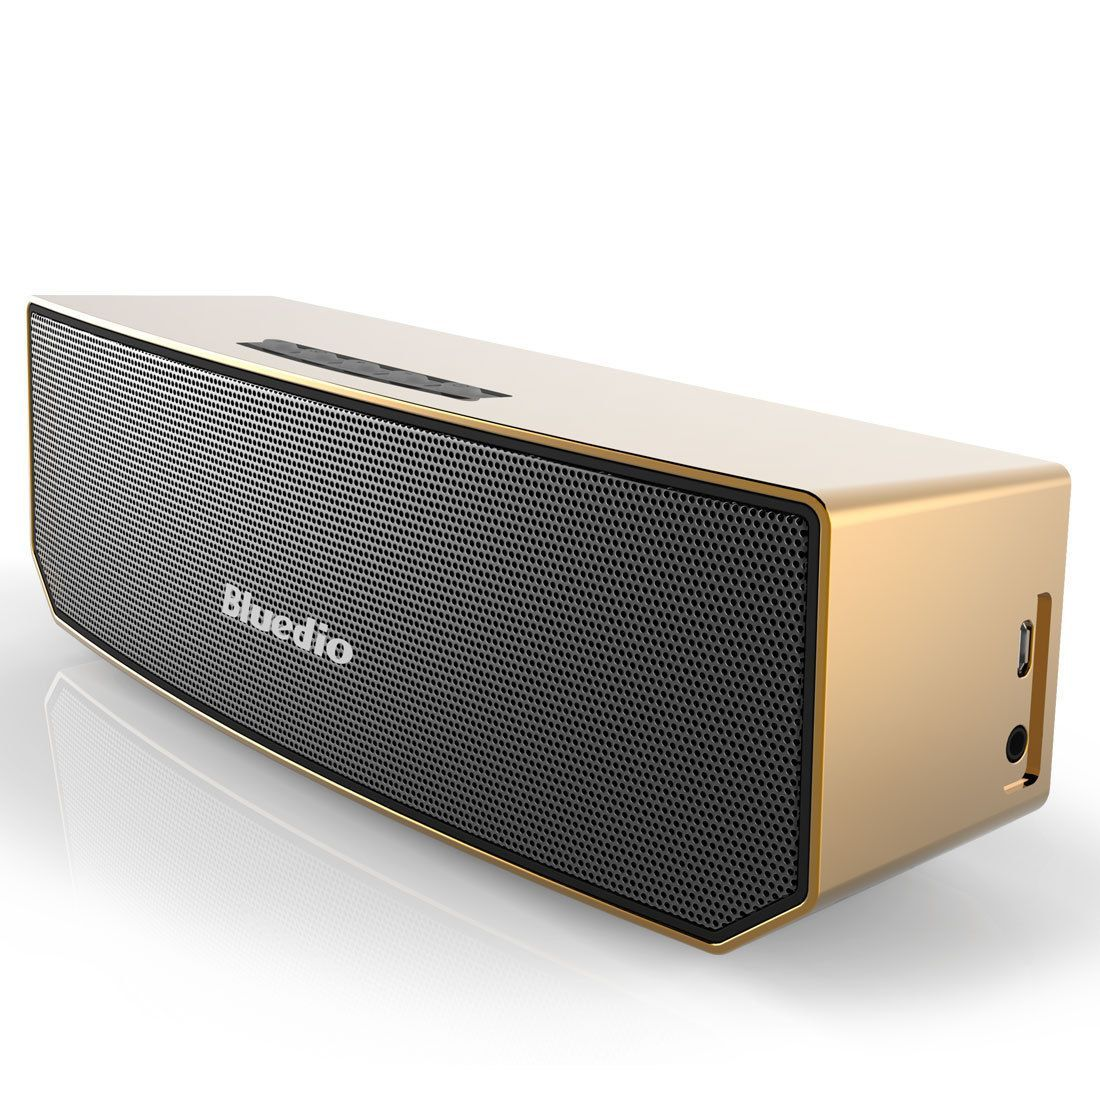 Bluedio Bs 3 Bluetooth Wireless Stereo 3d Portable Mini Mic Home Speakers Gold Bluetooth Speakers Portable Wireless Speakers Portable Wireless Speakers Bluetooth